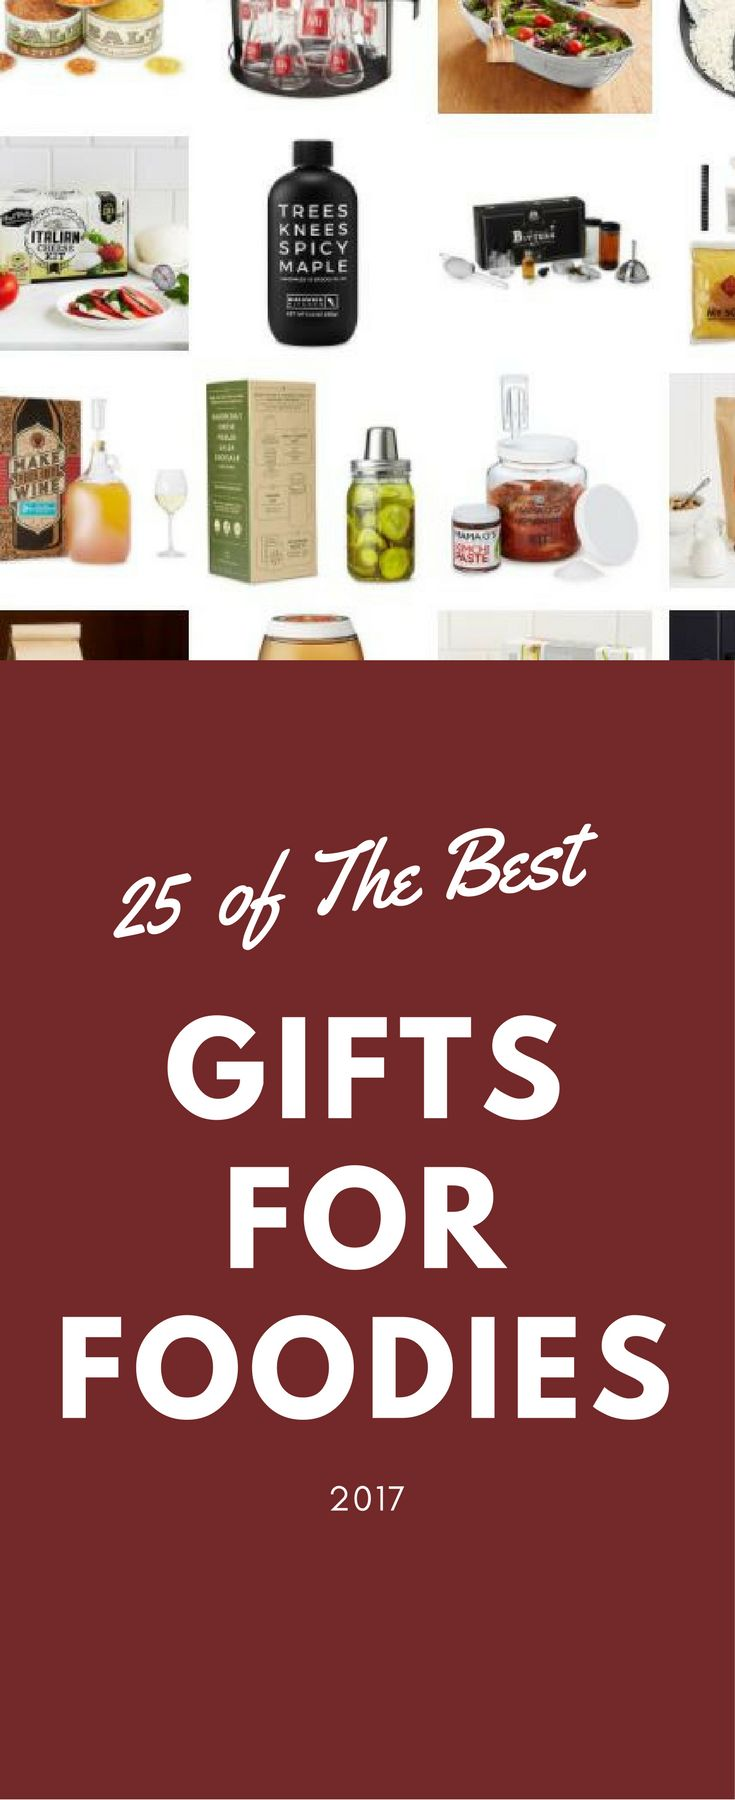 Exotic Flavors, Diy Kits, Spice Kits, Salt Kits and more. Got a Foodie Lover? Check out this list of the best gift for foodie lovers for Christmas 2017!